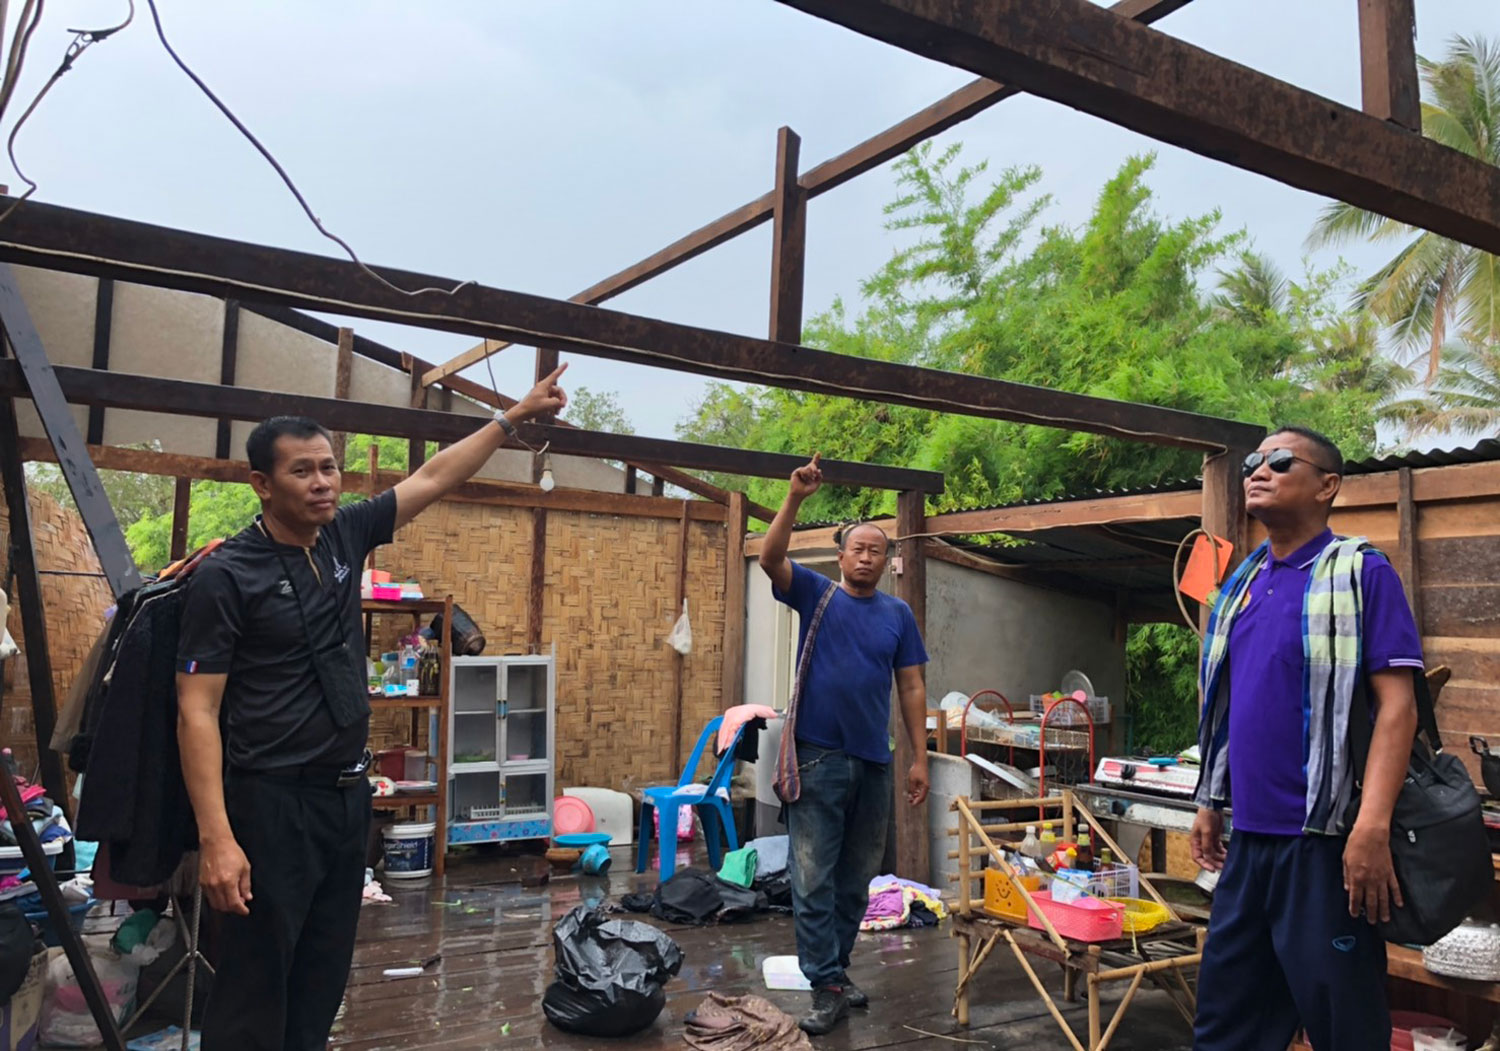 Officials survey a house that lost its roof to high winds during an intense summer storm that struck Nakhon Phanom on Friday evening. (Photo: Pattanapong Sripiachai)